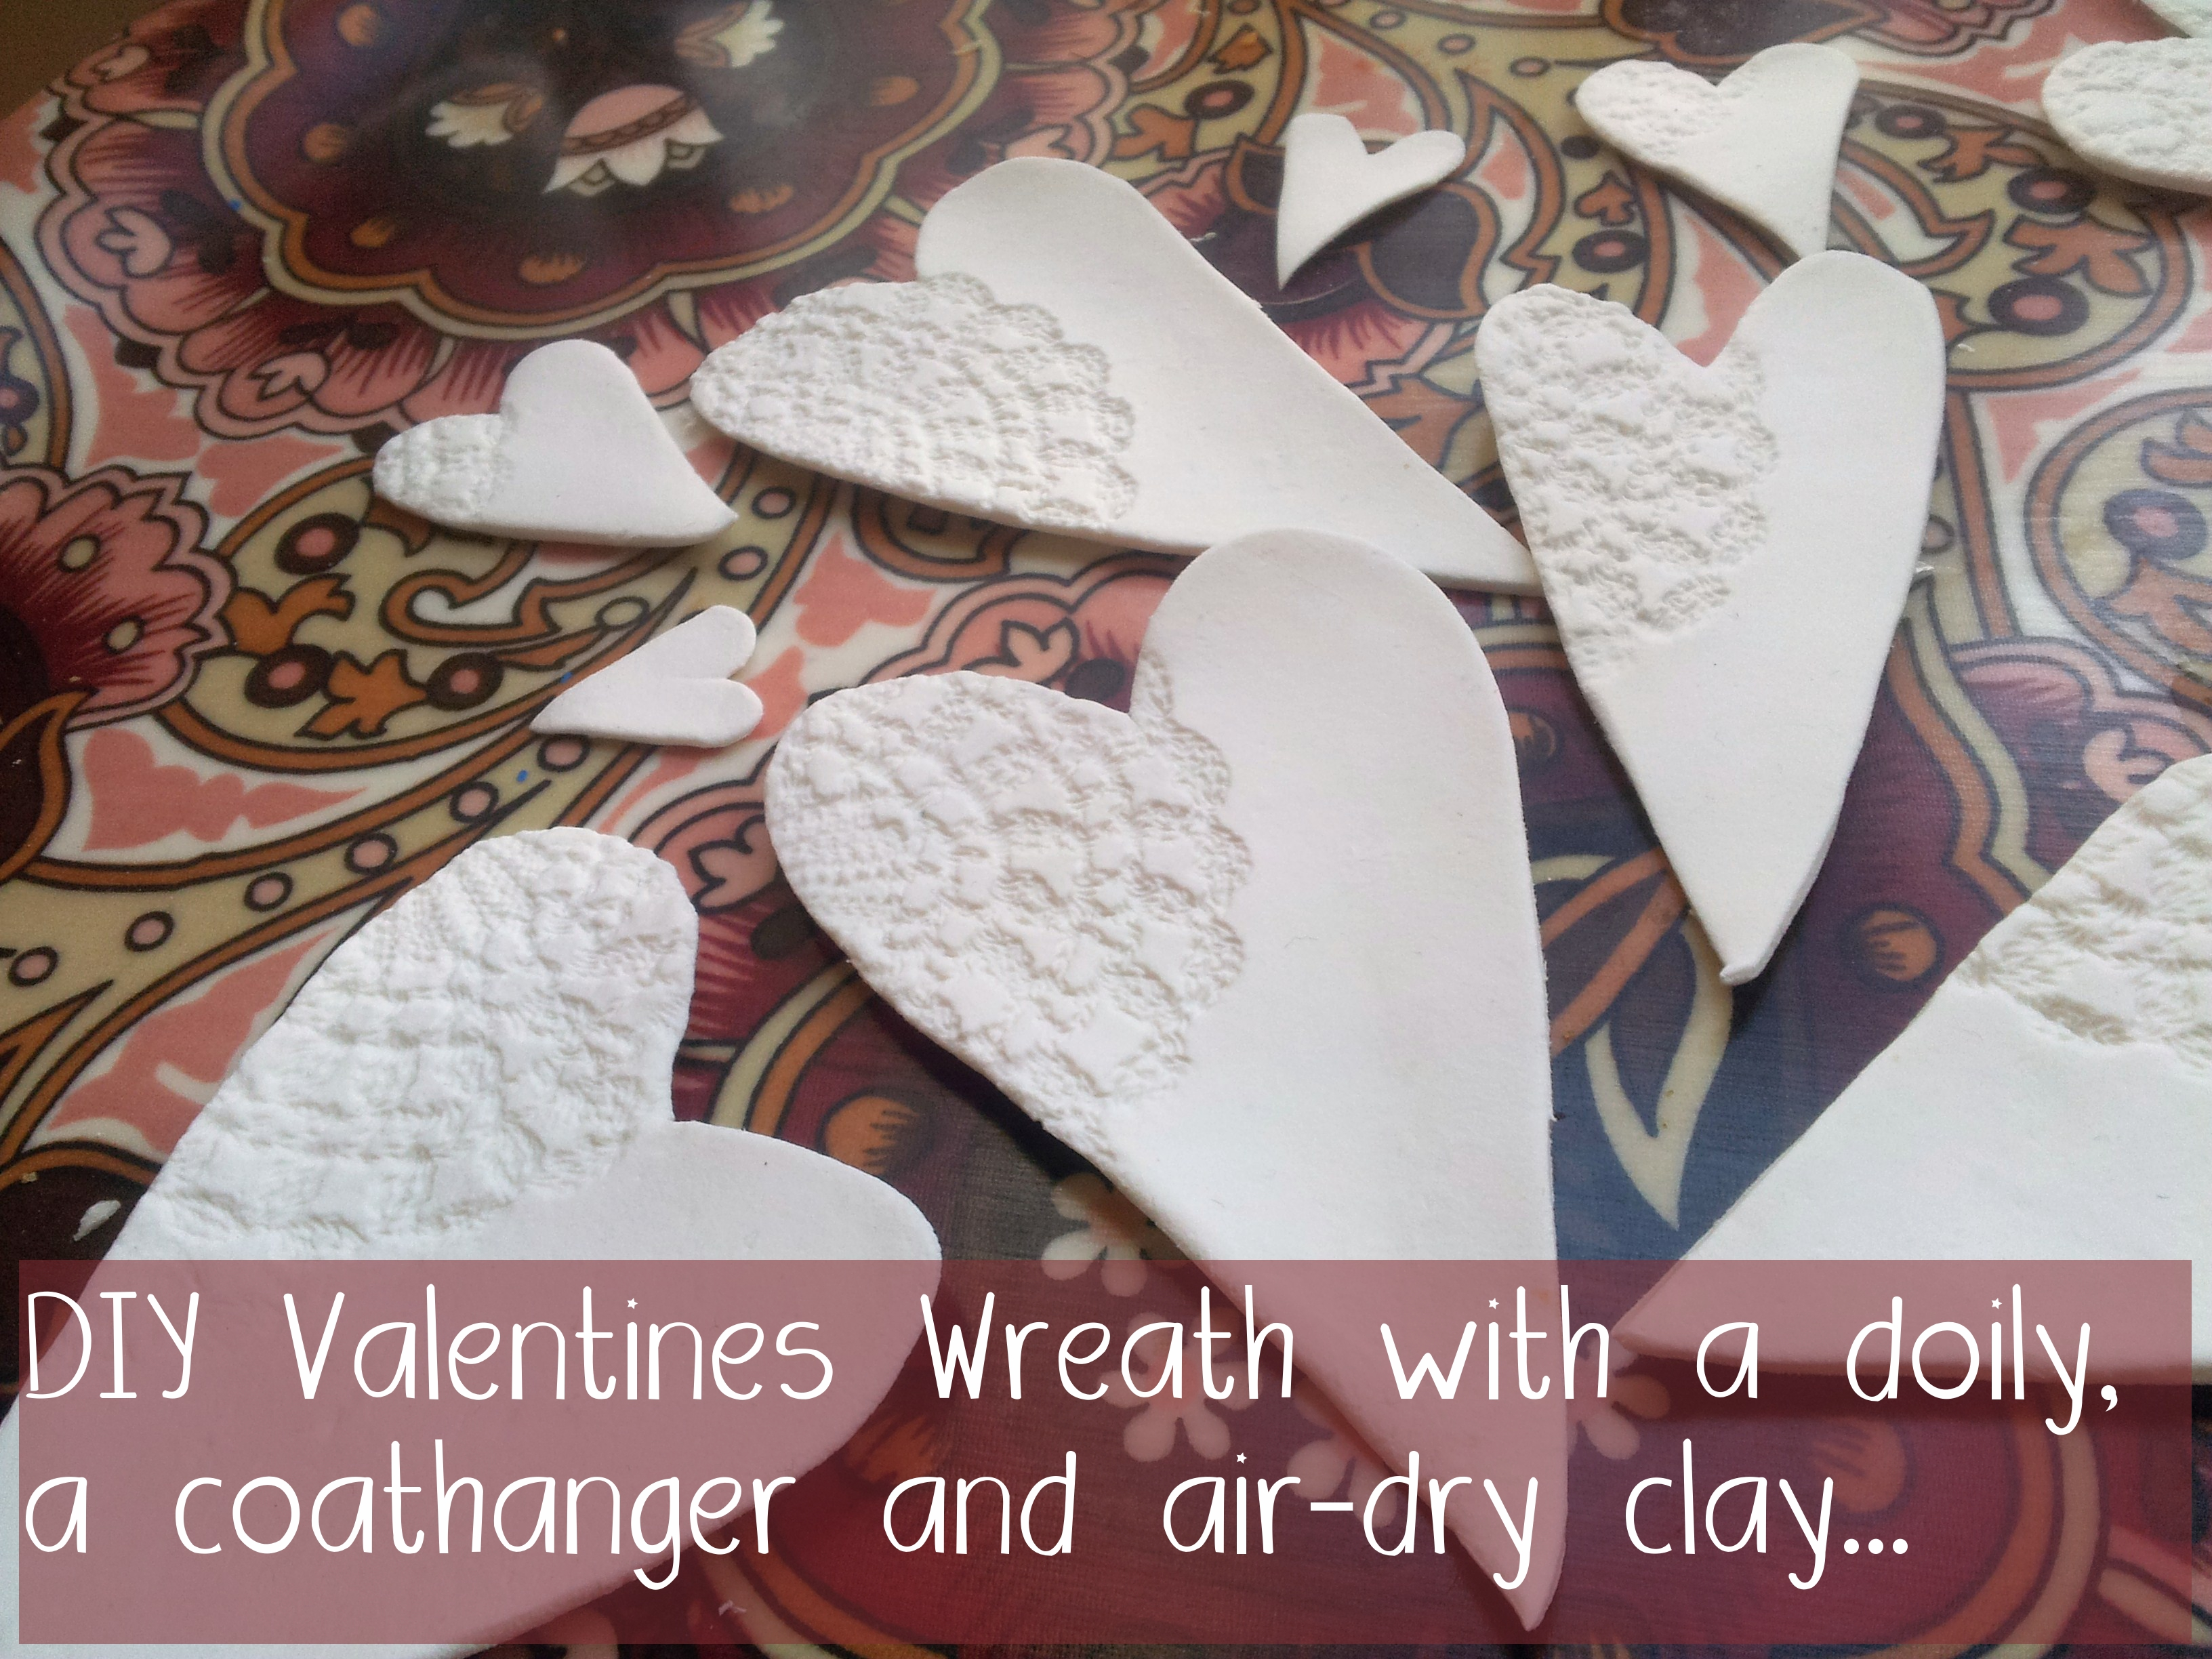 Homemade Valentines Wreath tutorial